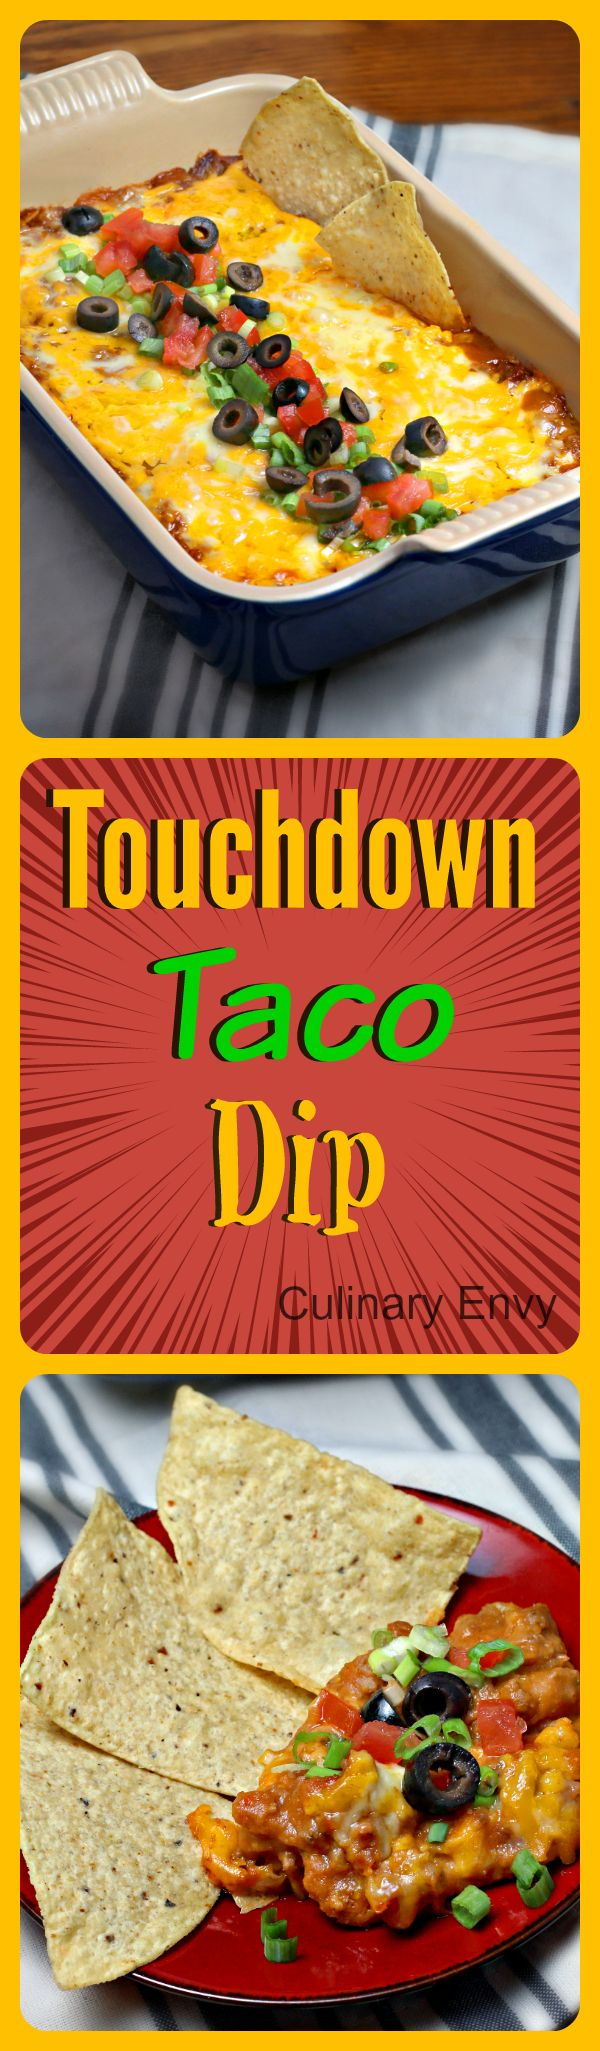 Touchdown Taco dip is the perfect hardy bean dip to root on your favorite team. One different ingredient makes all the difference! Way more PIZZAZZ than regular bean dip alone. Simple to make and bake.